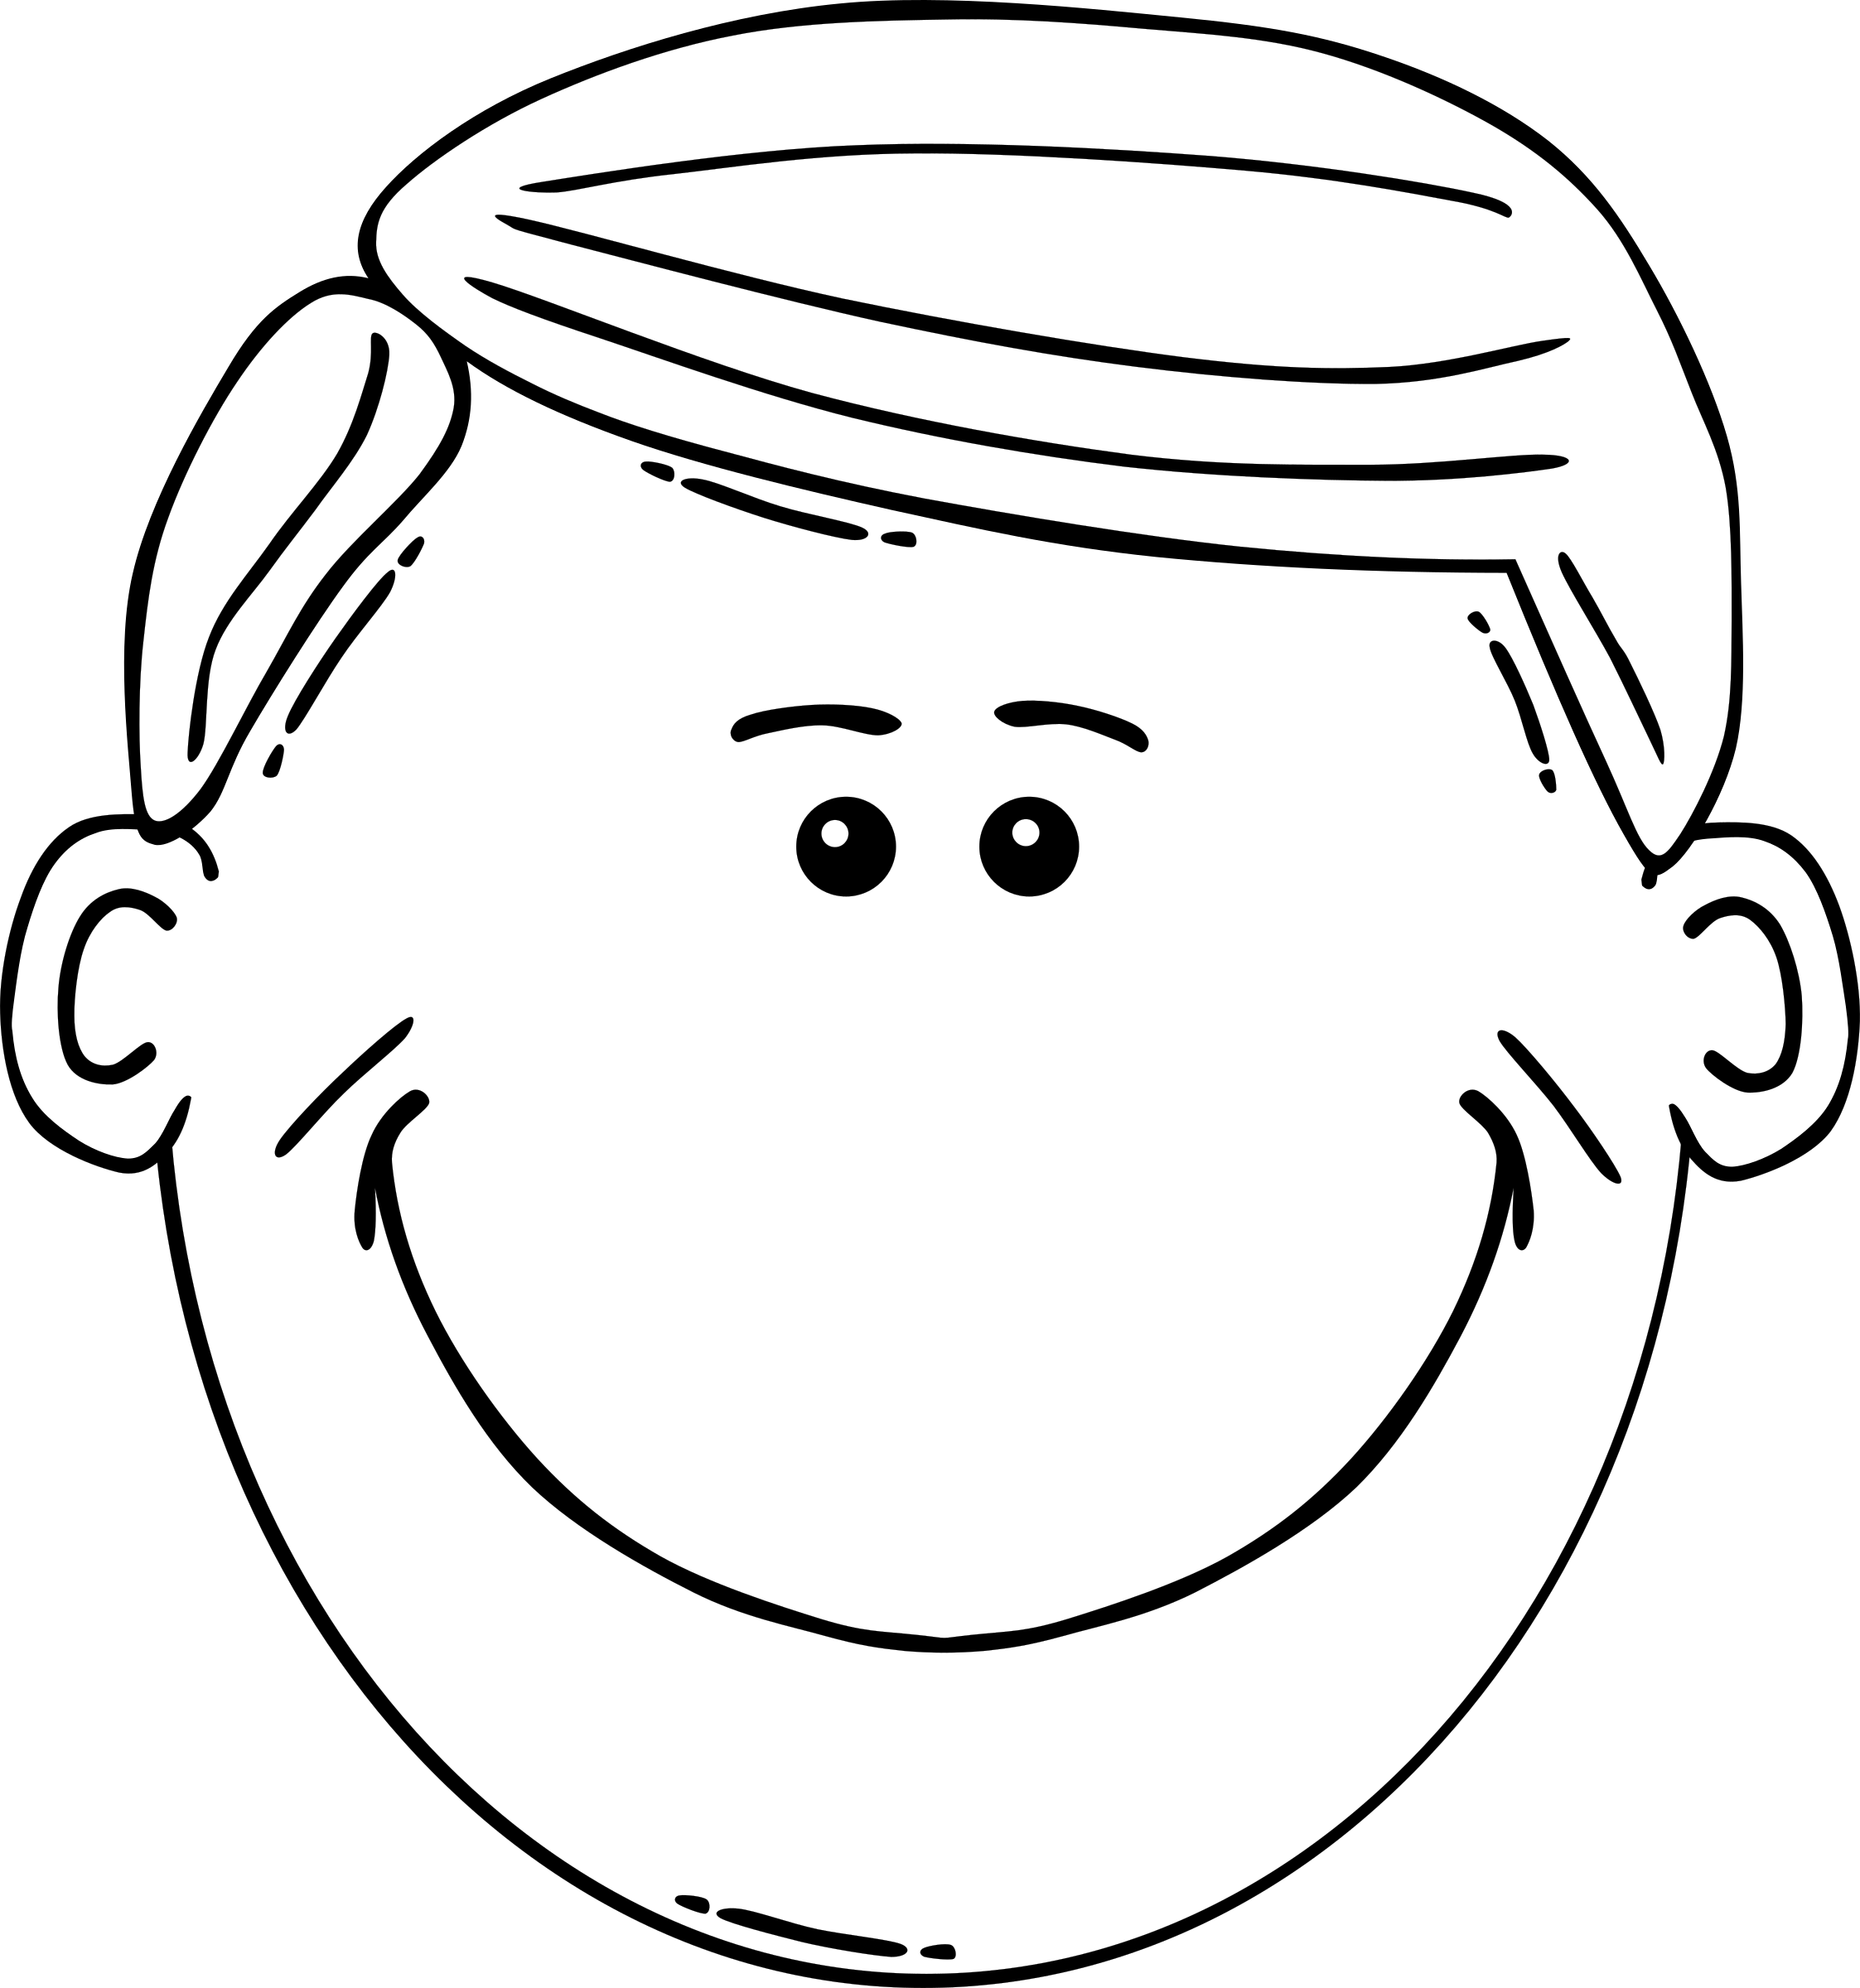 G man world label. Number 1 clipart face